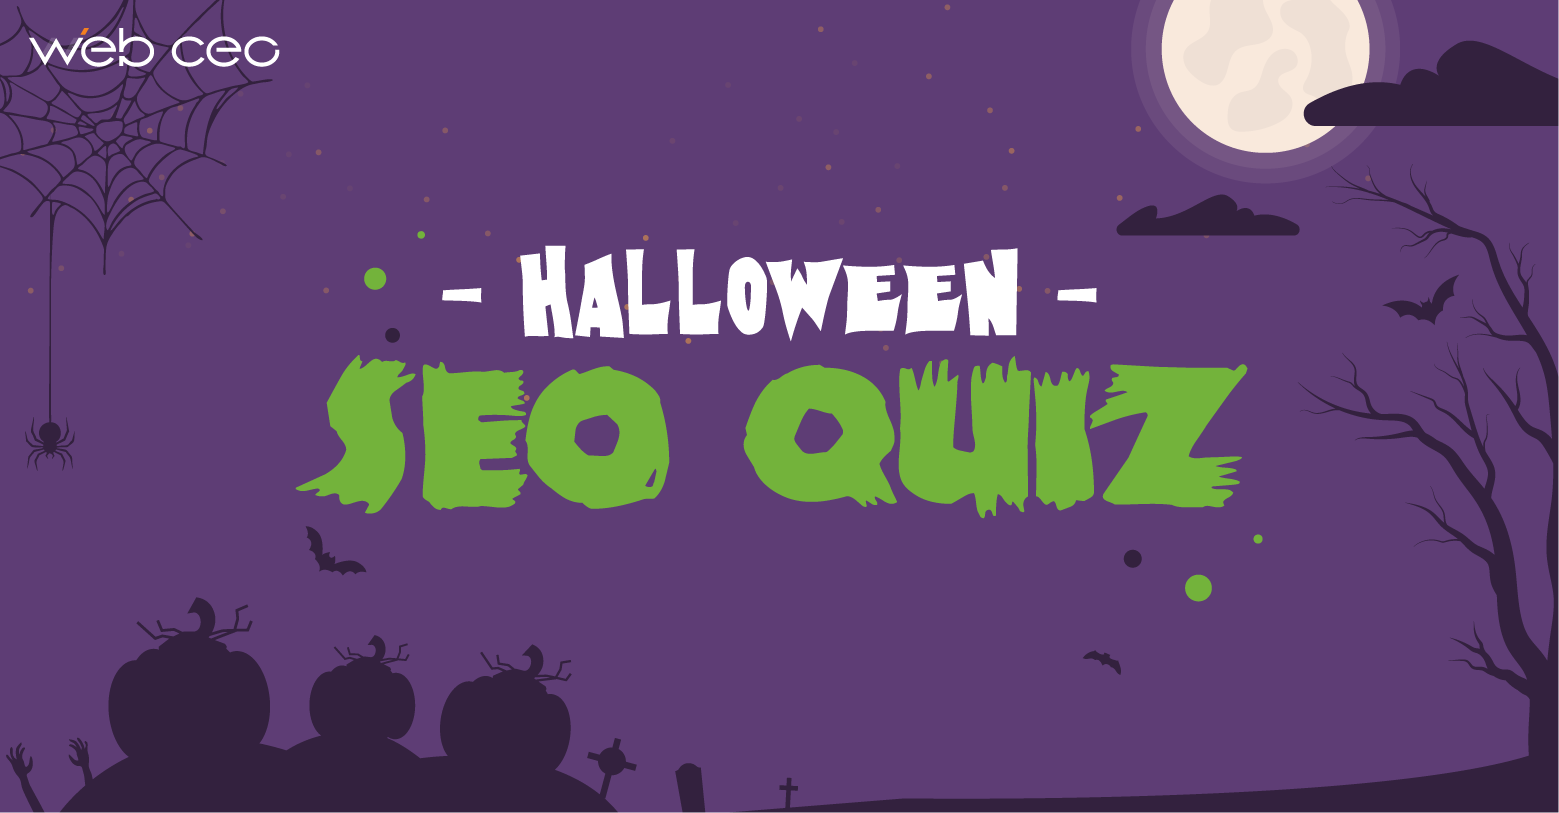 The-WebCEO-Halloween-SEO-Quiz